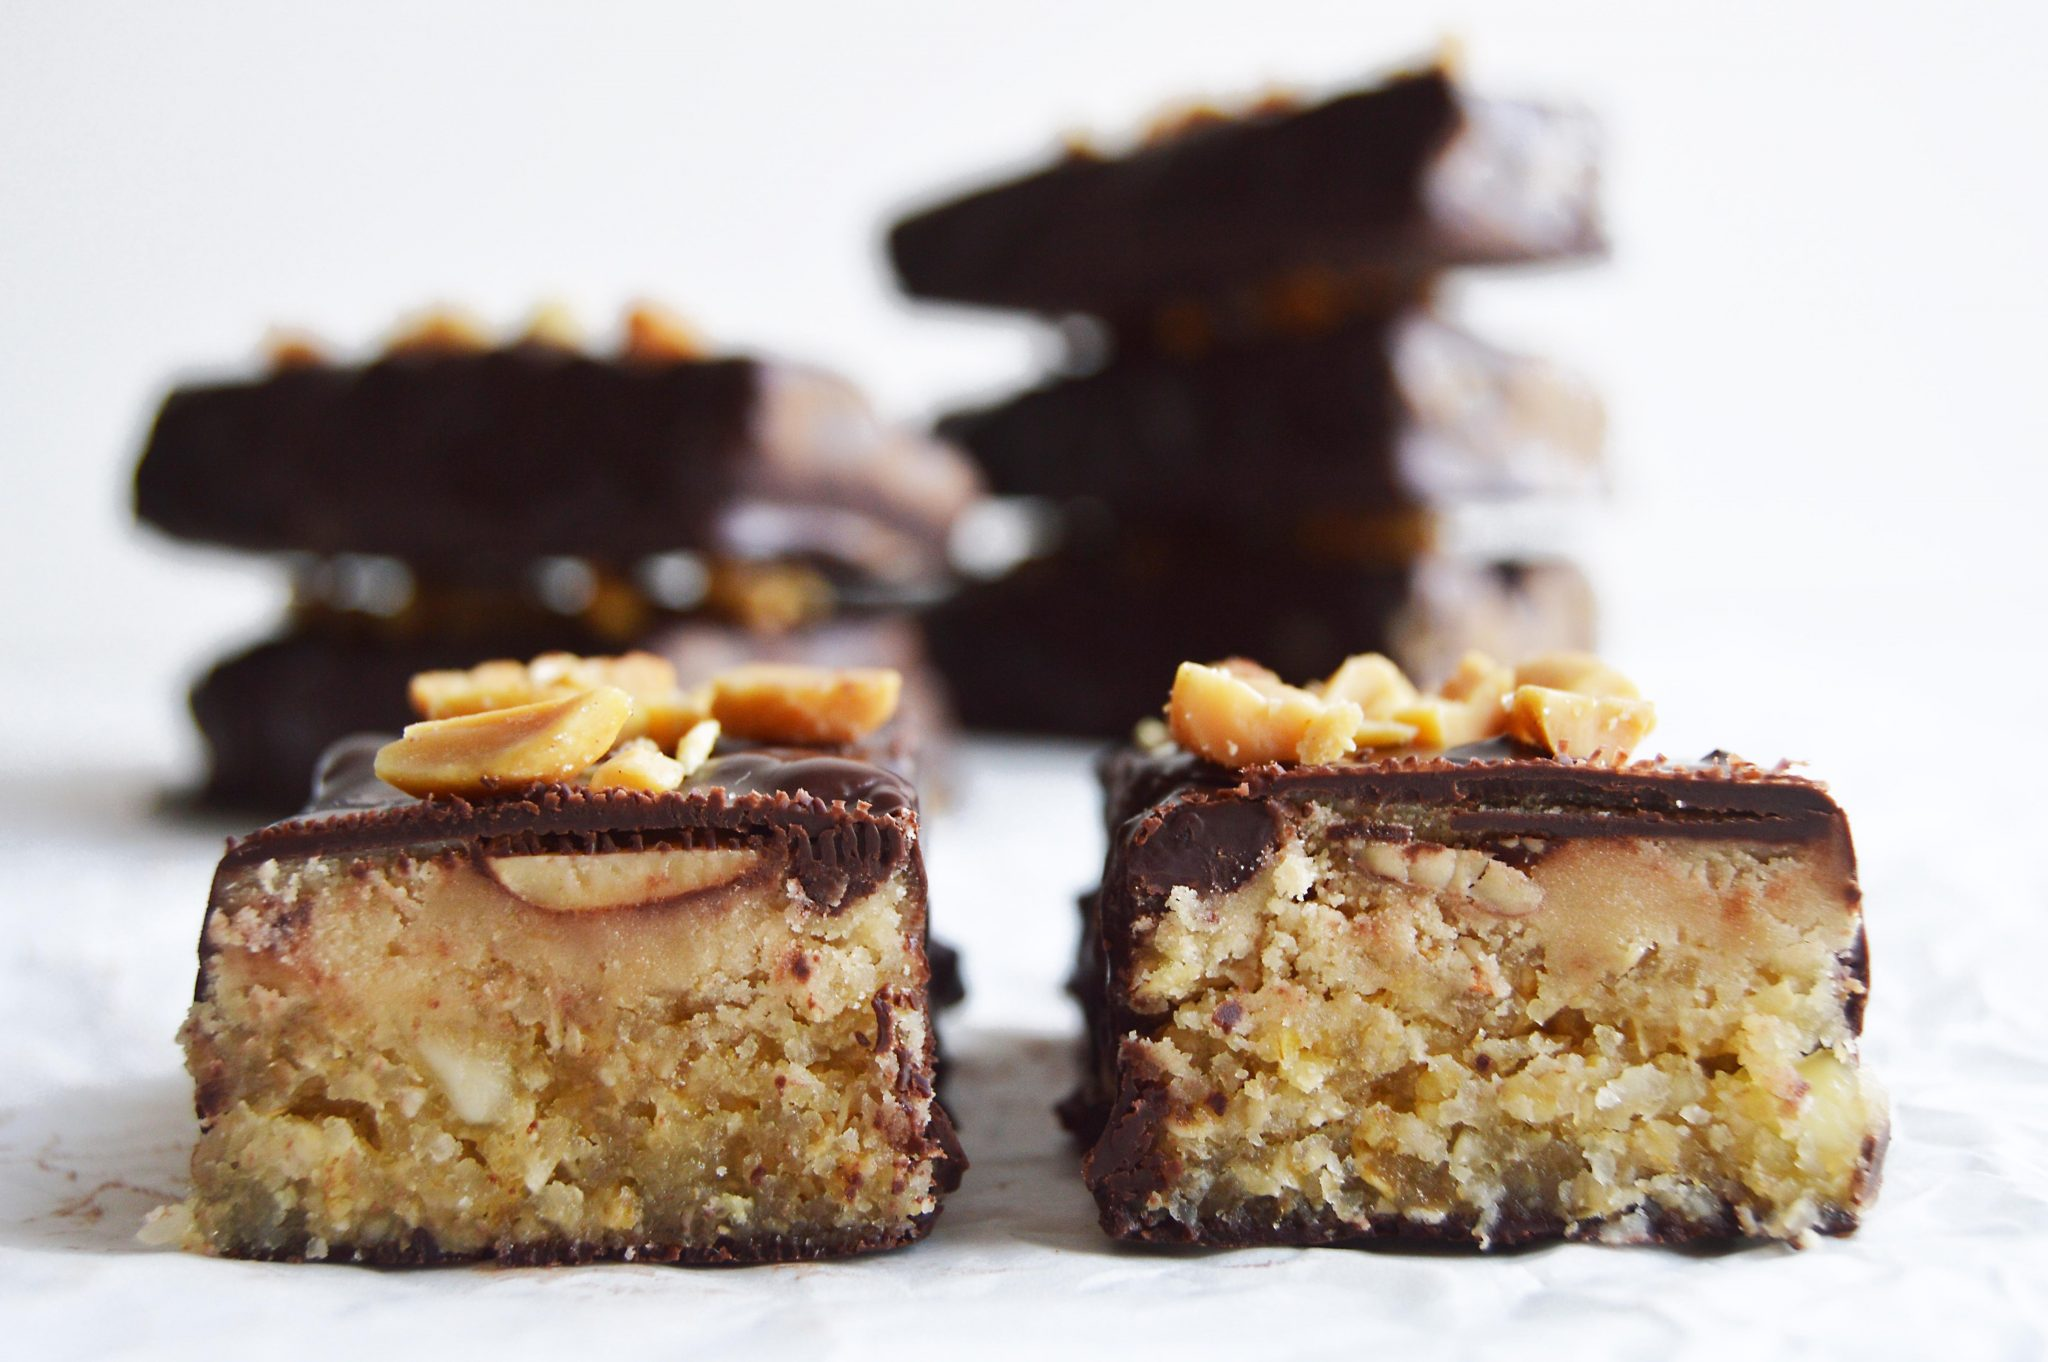 Vegan Nut & Caramel Chocolate Bars